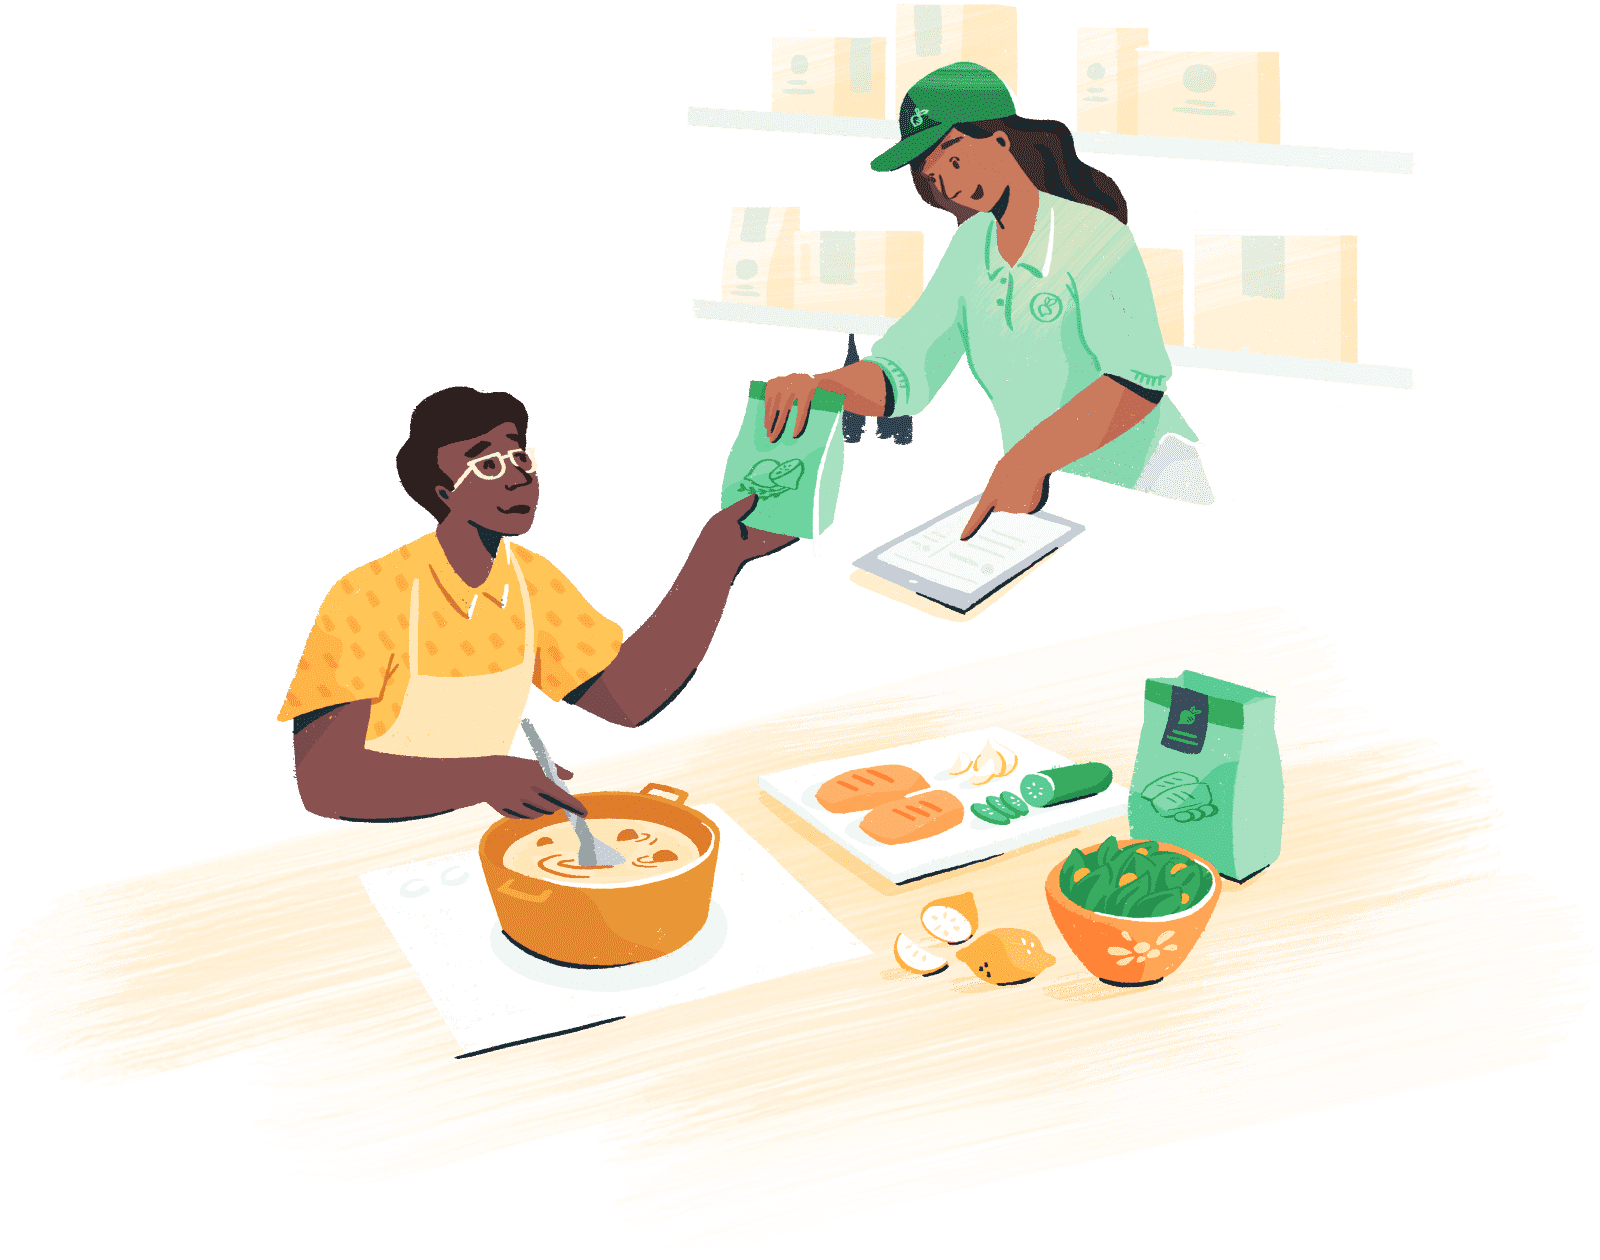 Illustration: Grocery employee handing bag to person making soup